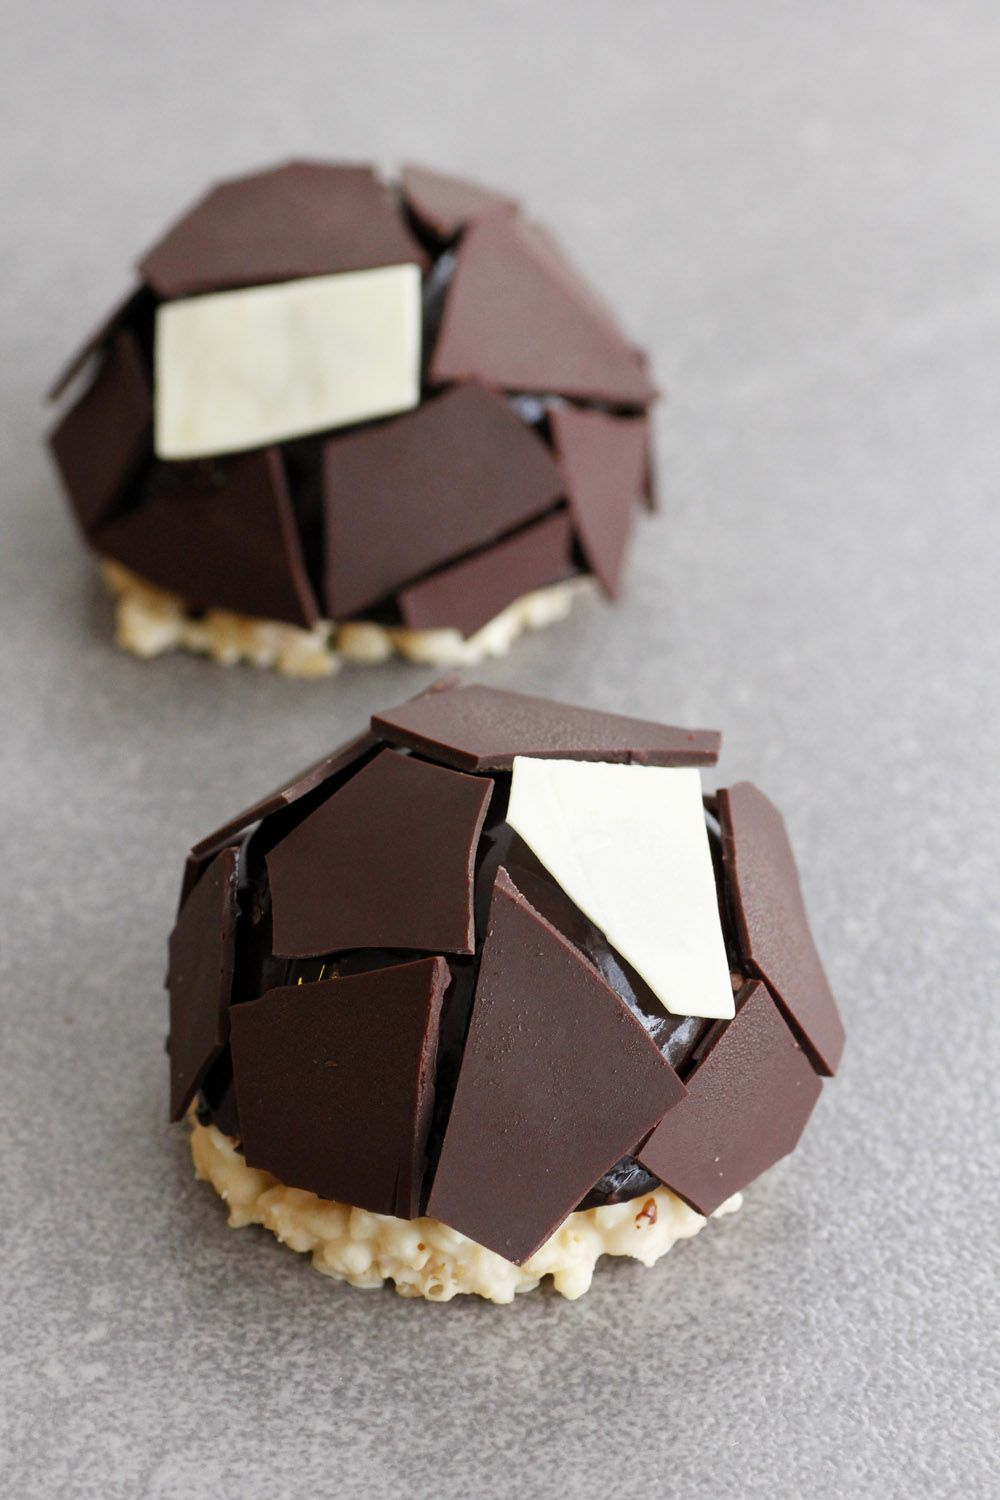 Plenitude – Salted Caramel Chocolate Mousse Domes